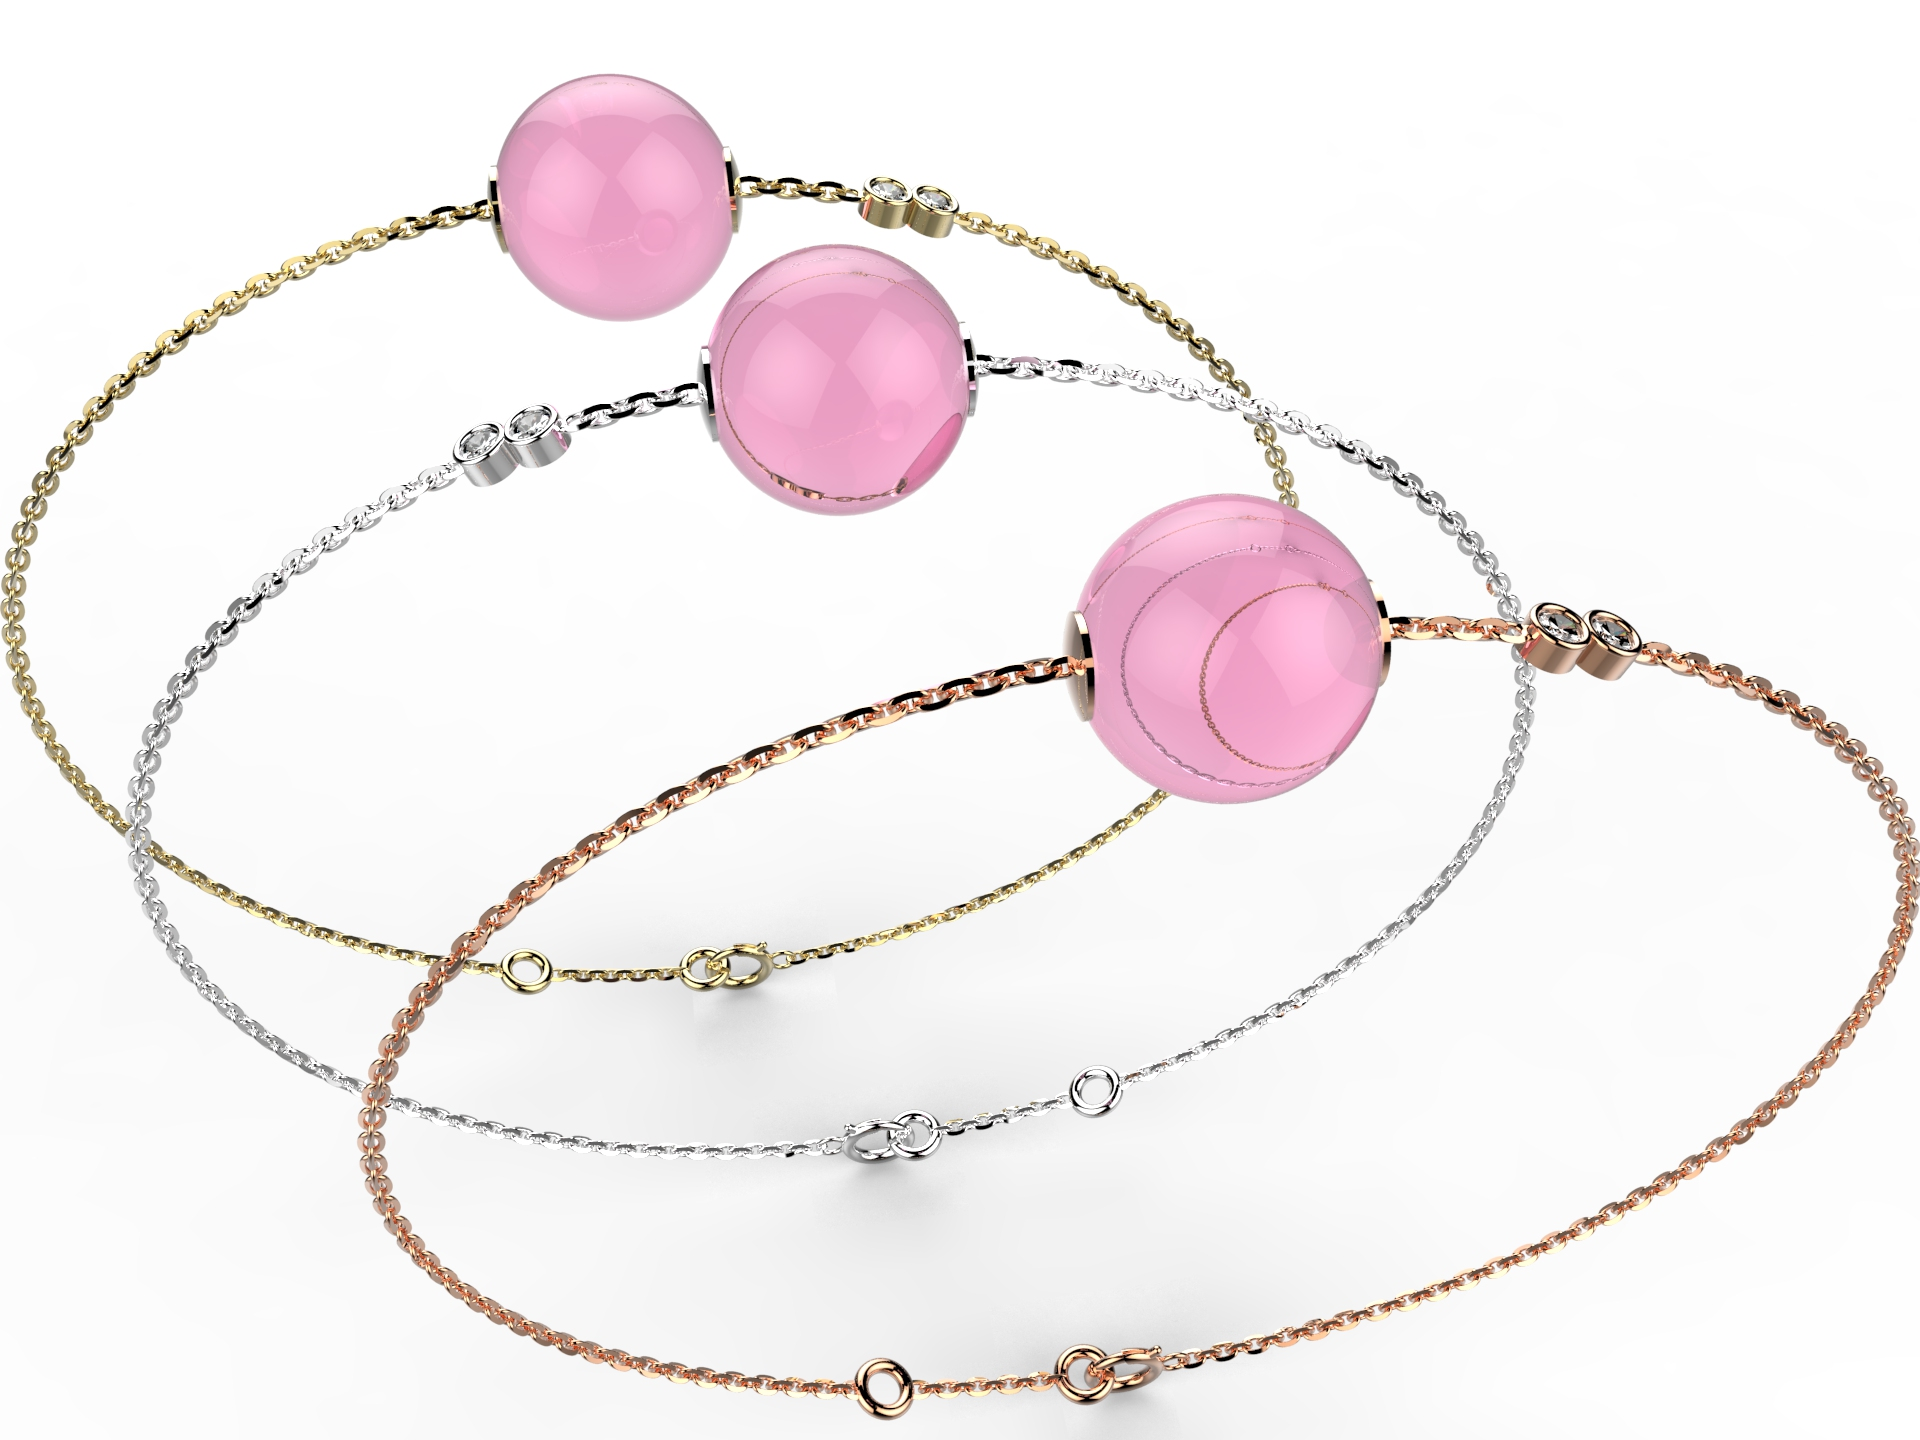 Bracelet or perle quartz rose 360 €